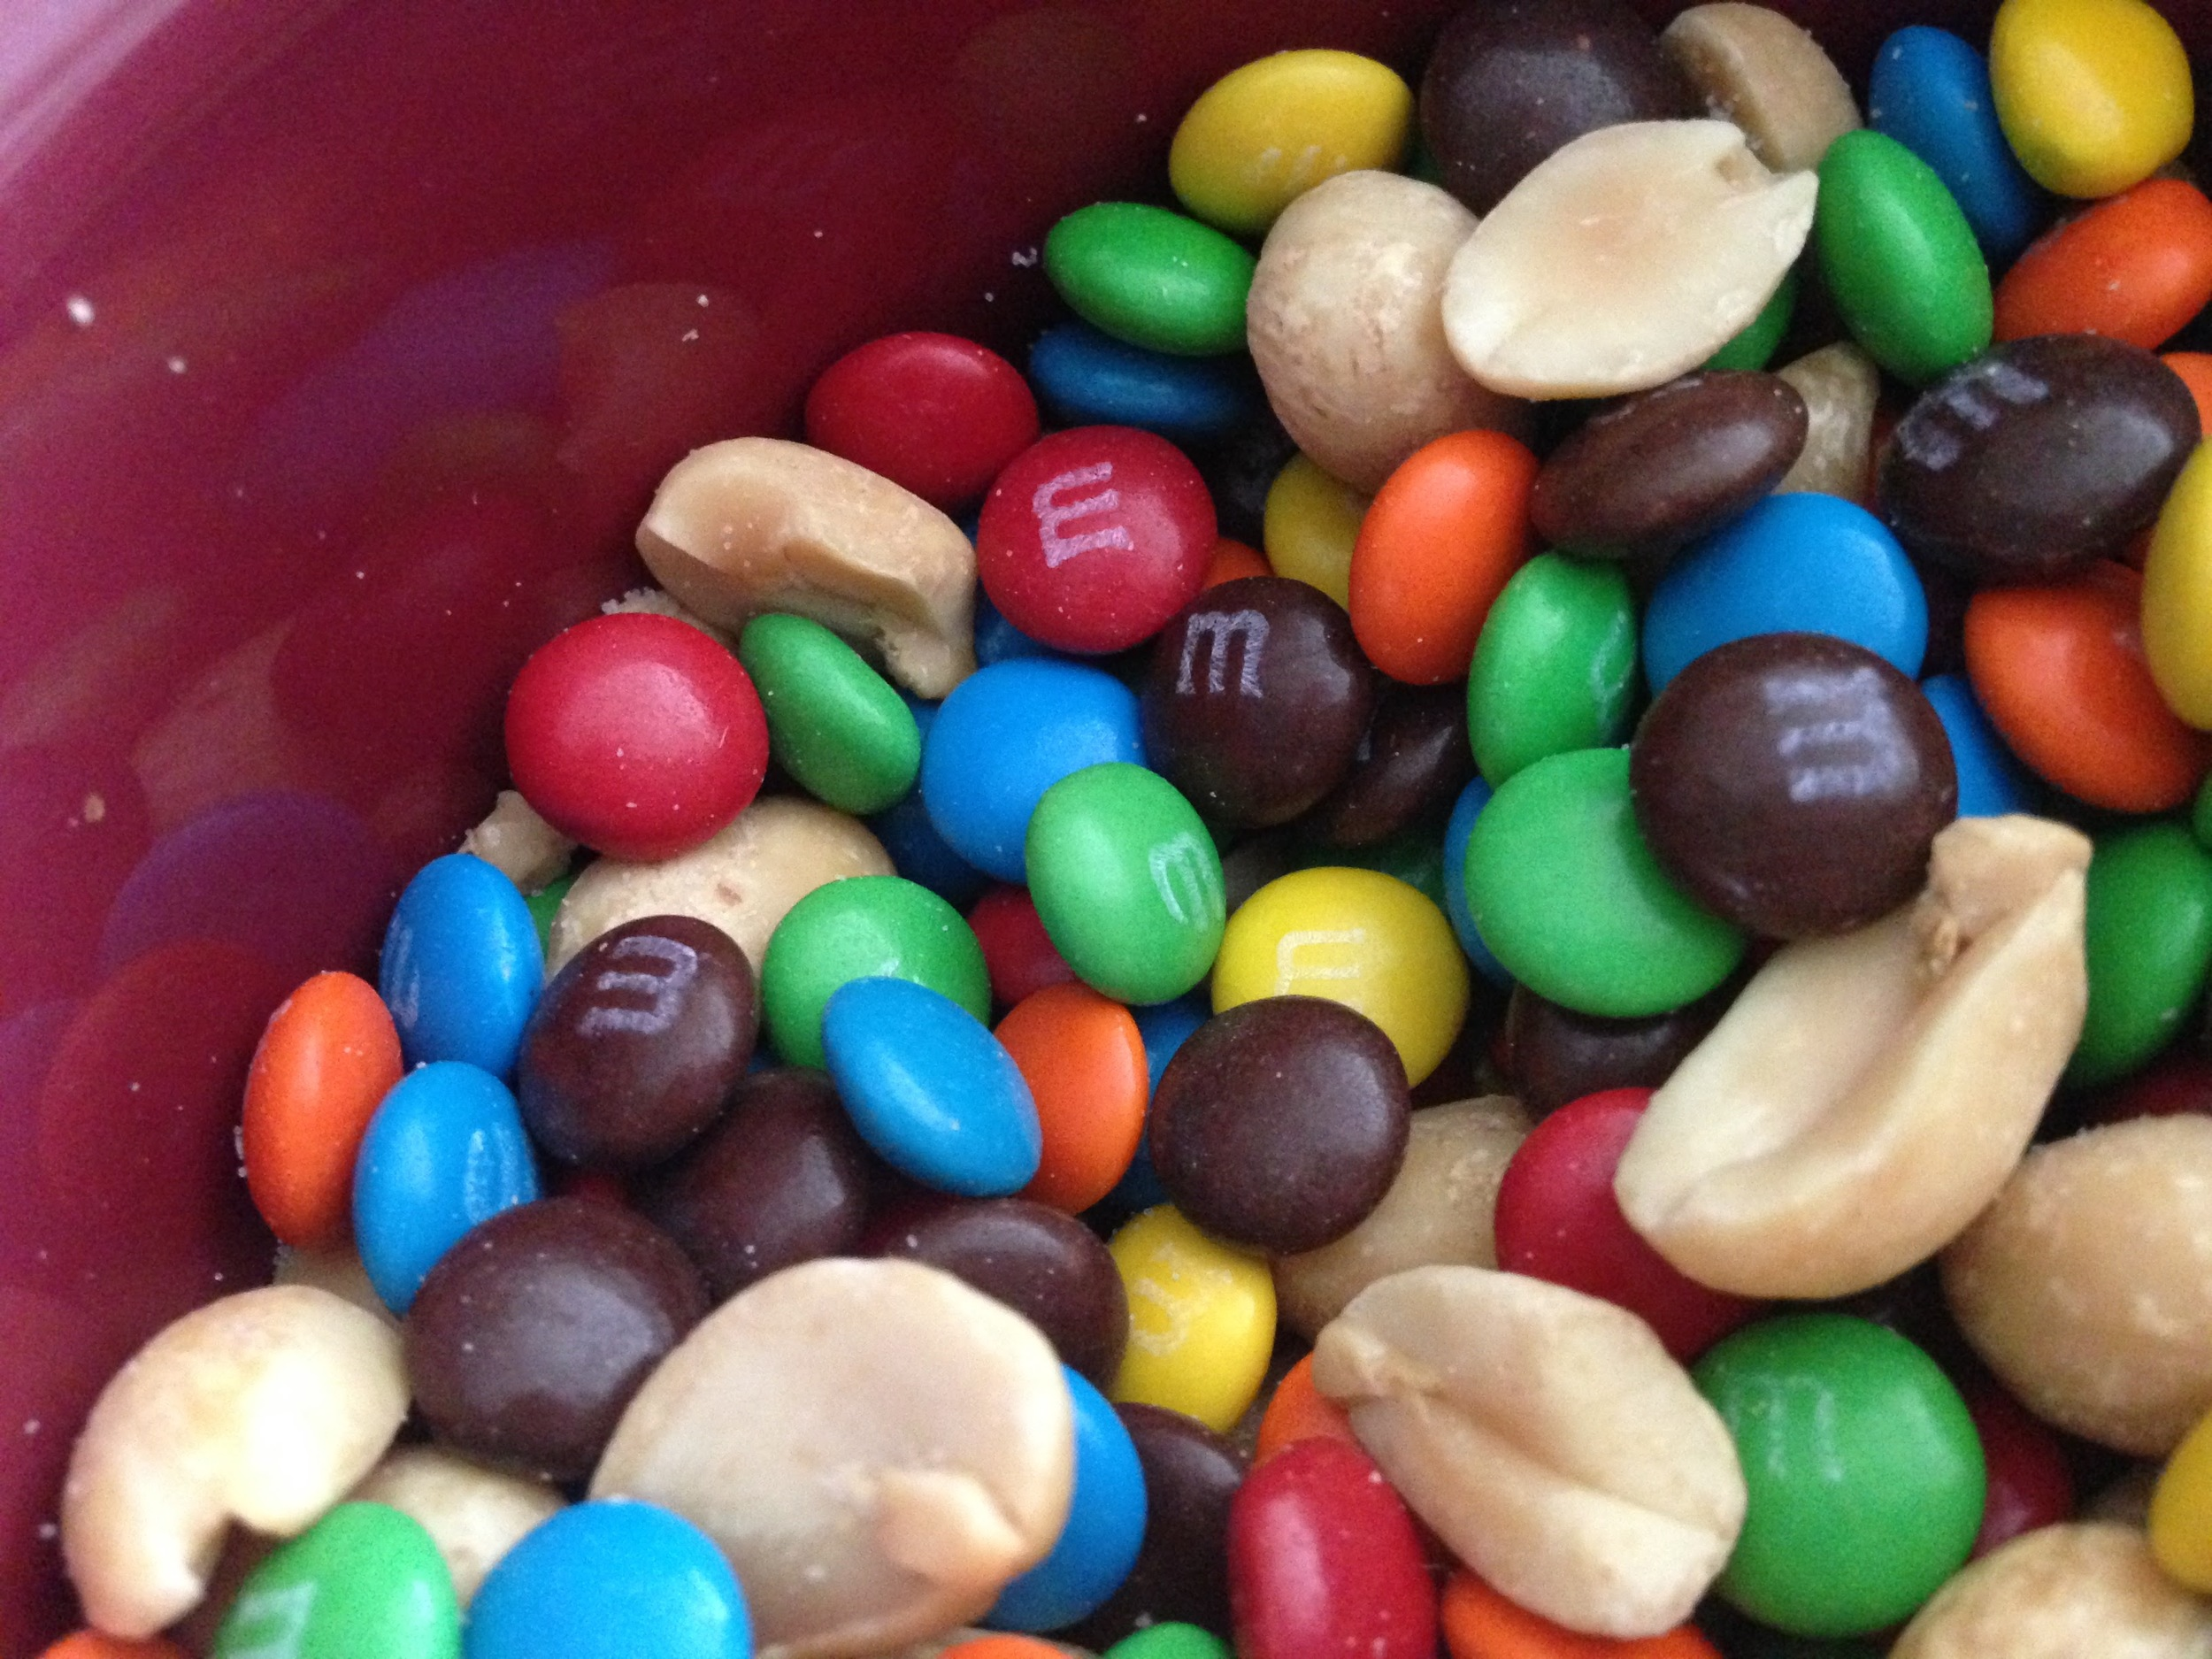 Movies-and-M&Ms.jpg